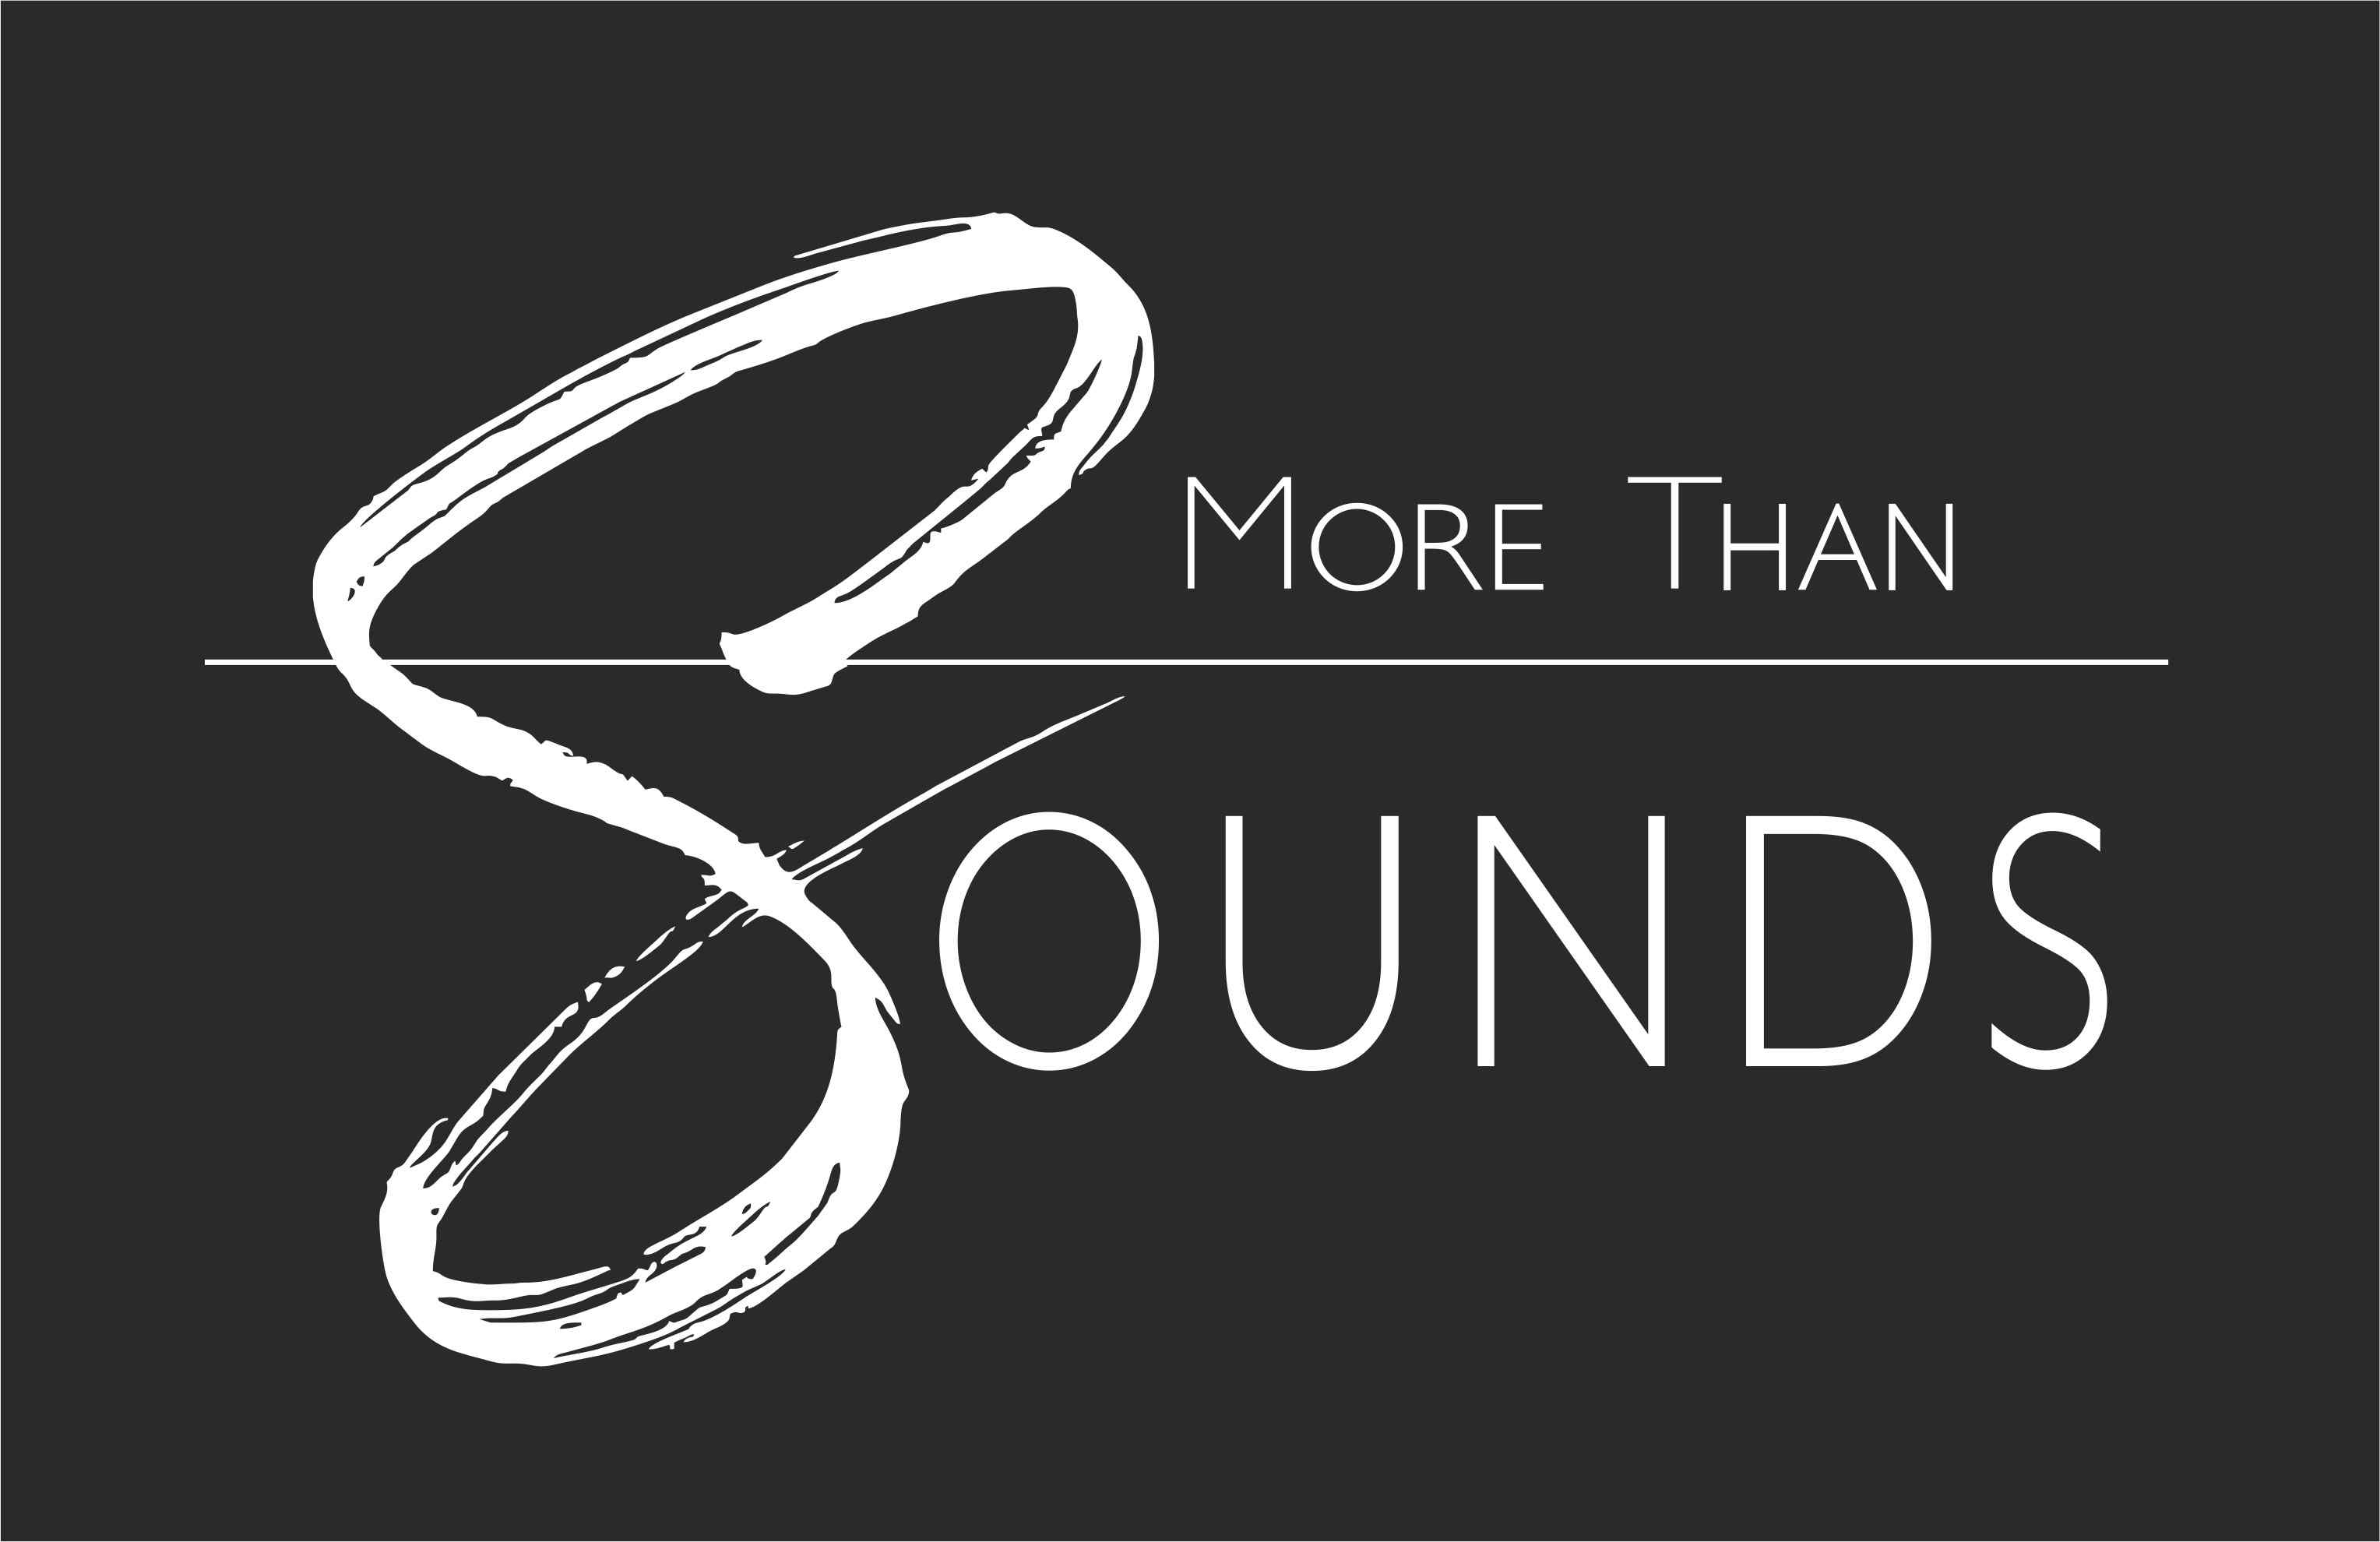 More than Sounds